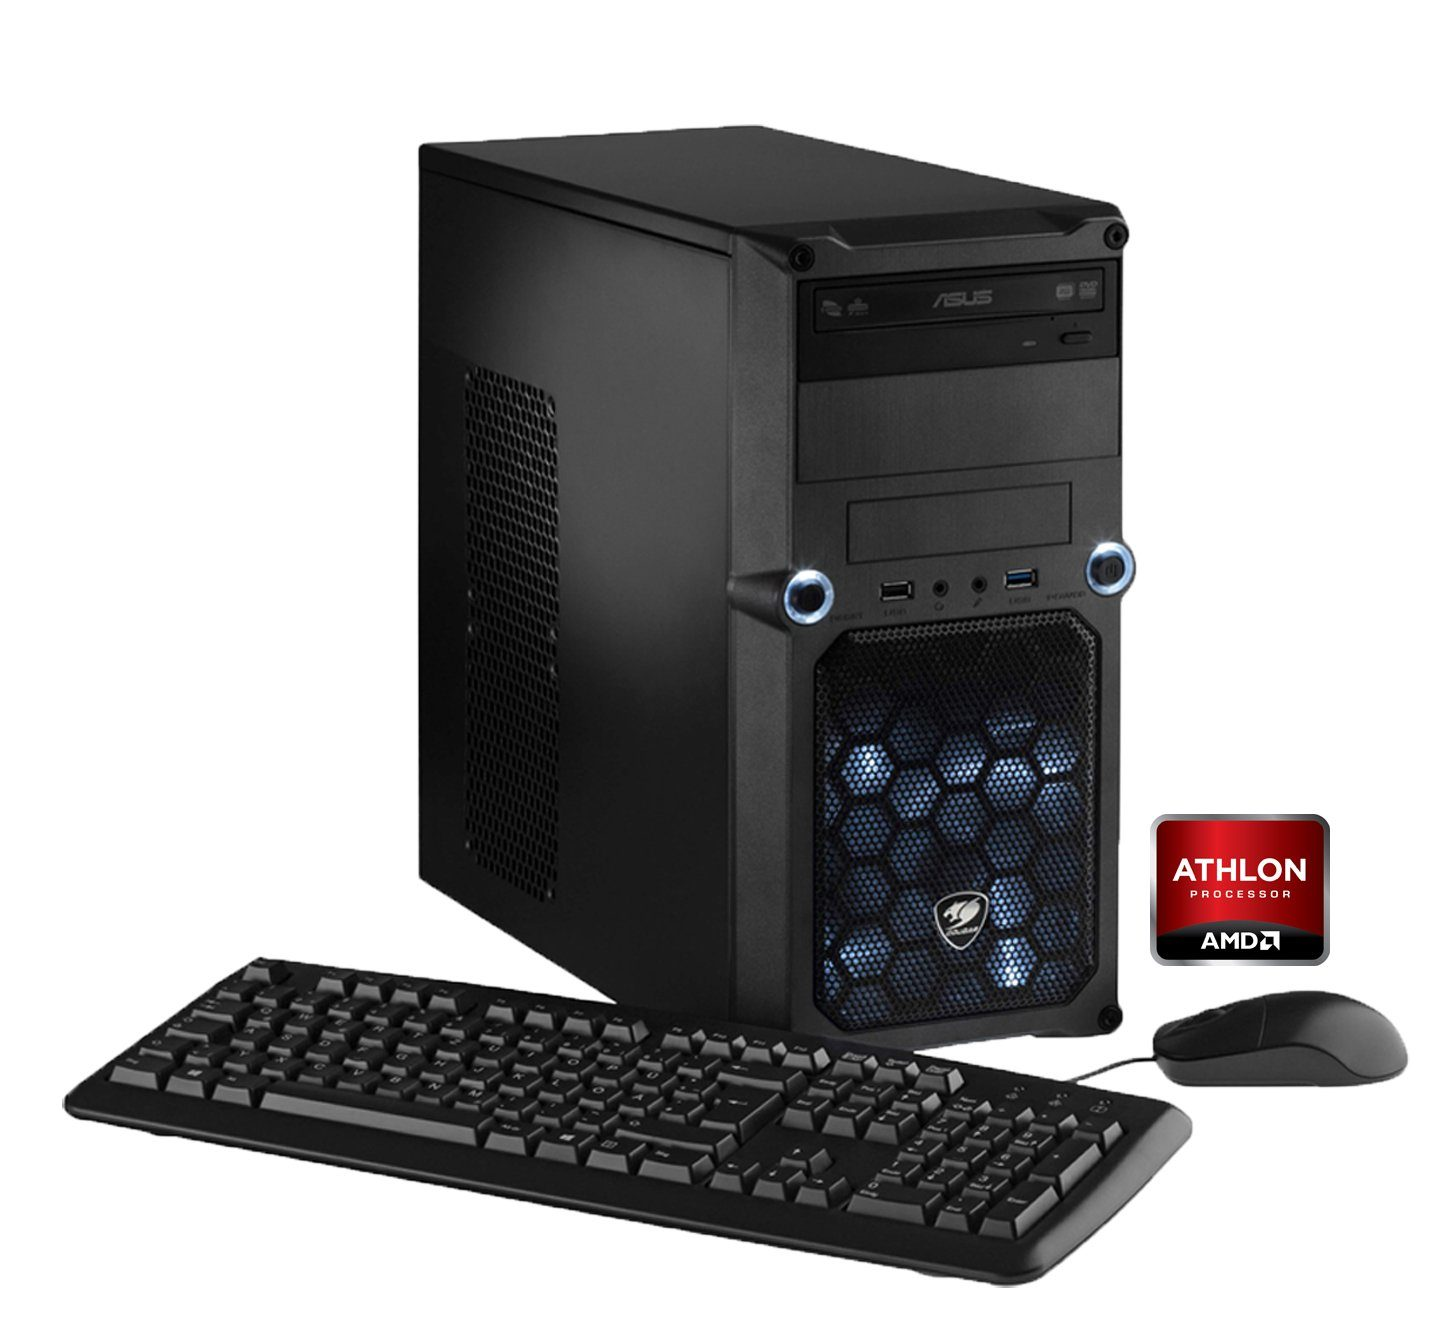 Hyrican PC AMD Athlon X4 880K, 8GB, 1TB, AMD Radeon R7 360, Windows 10 »CyberGamer 5276 «